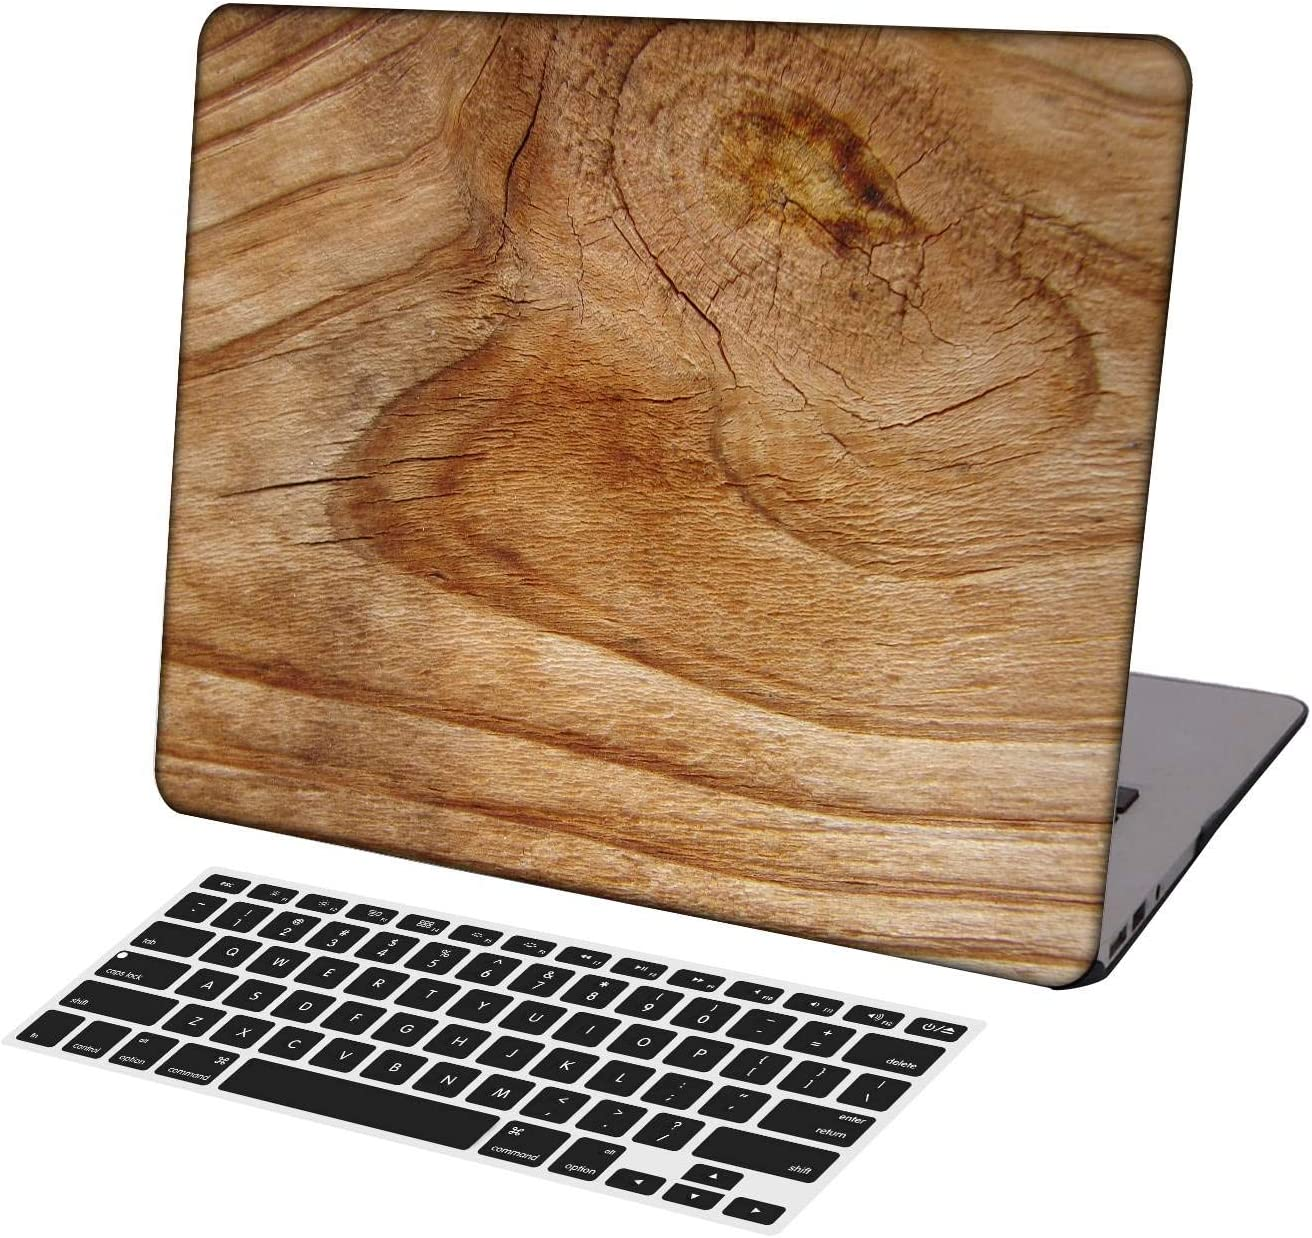 KSK KAISHEK Laptop Case for Newest MacBook Pro 13 inch A2289/A2251/A2159/A1989/A1706/A1708,Plastic Ultra Slim Light Hard Shell + Keyboard Cover Compatible MacBook Pro 13 inch,Wood Grain